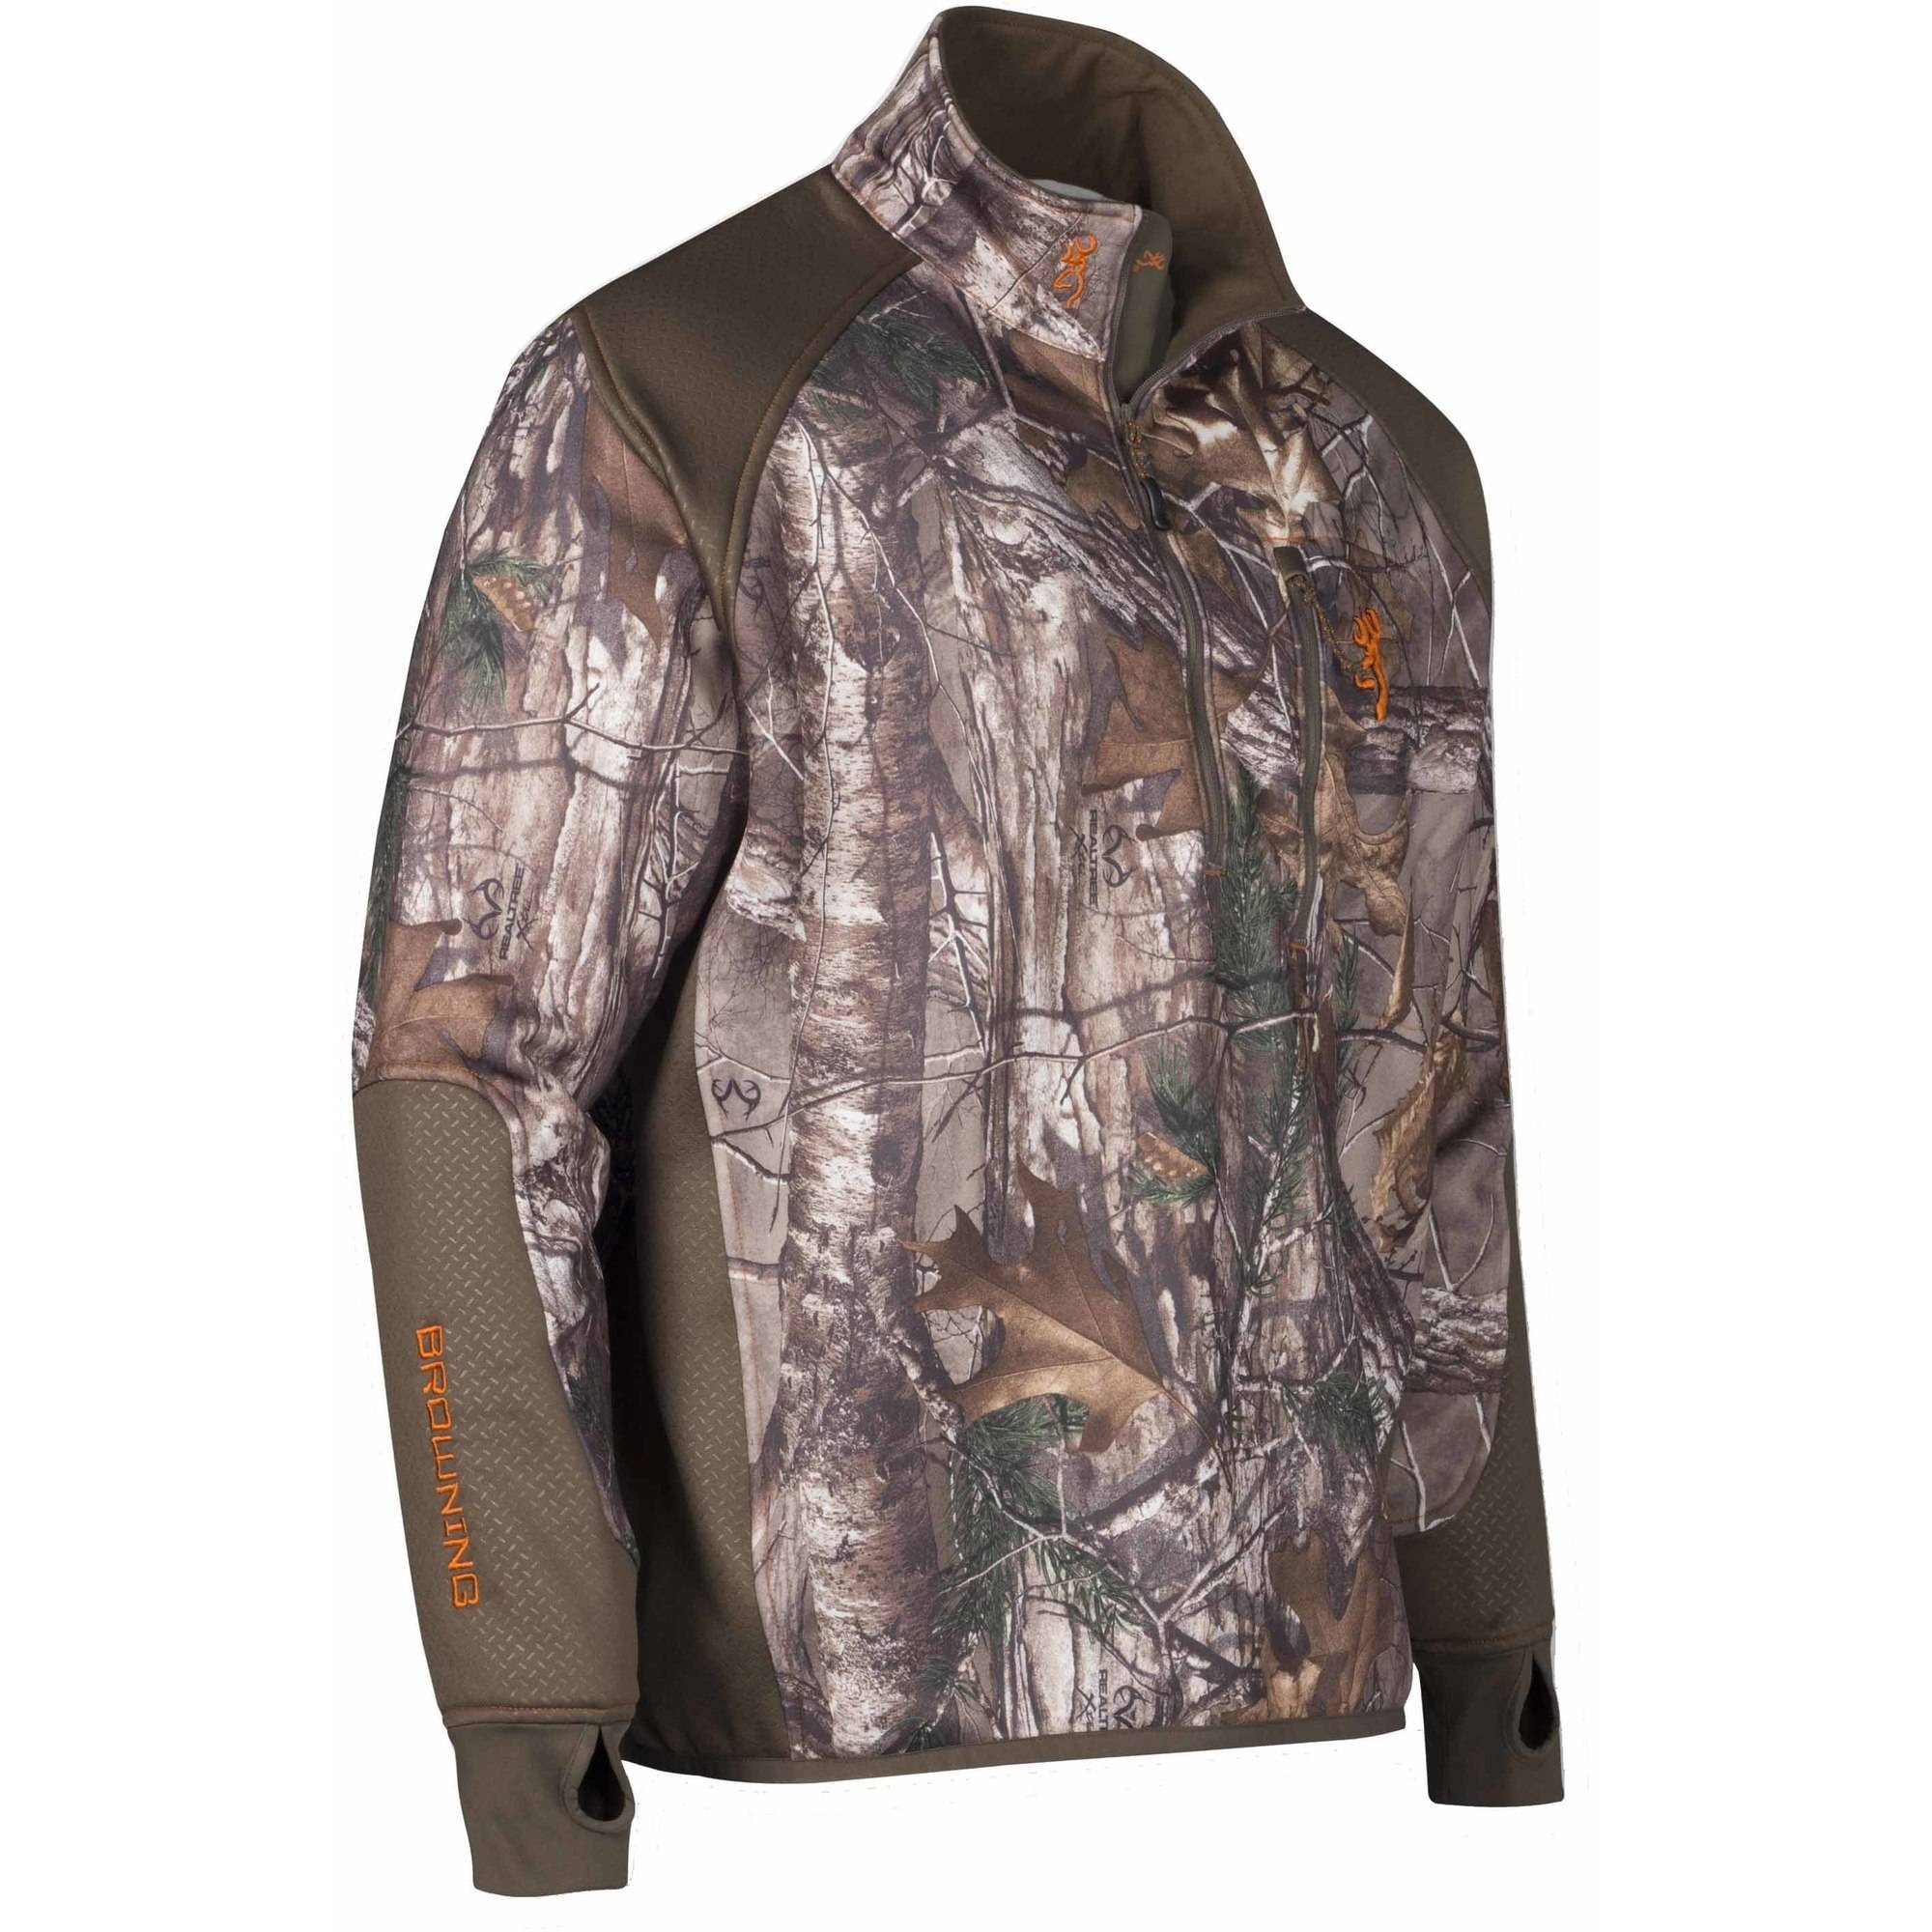 Hell's Canyon Performance Fleece 1 4 Zip Jacket by Browning